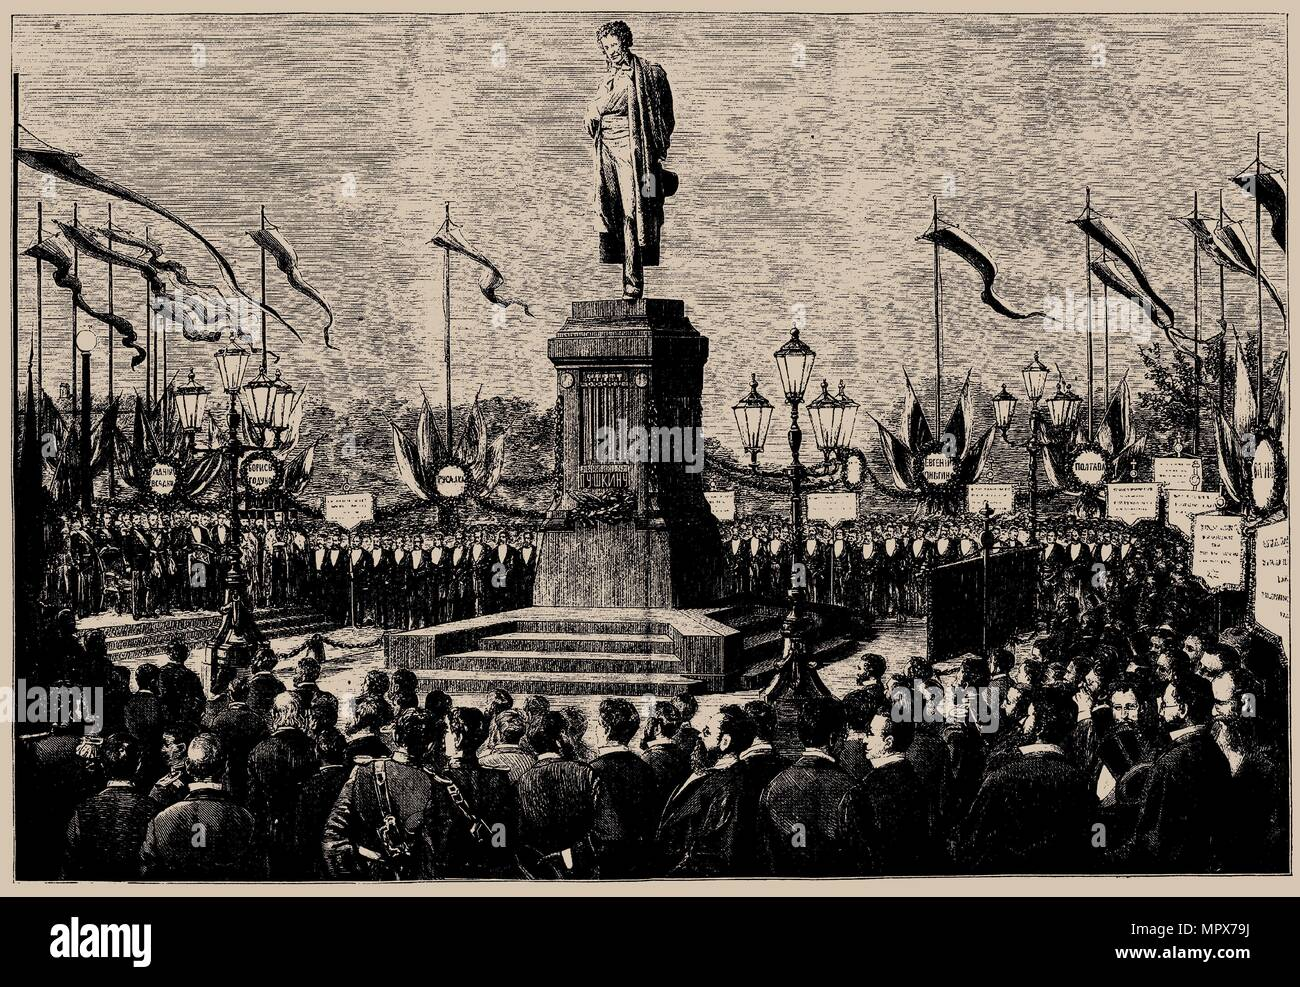 The unveiling of the Pushkin monument in Moscow on June 6, 1880, 1880. - Stock Image